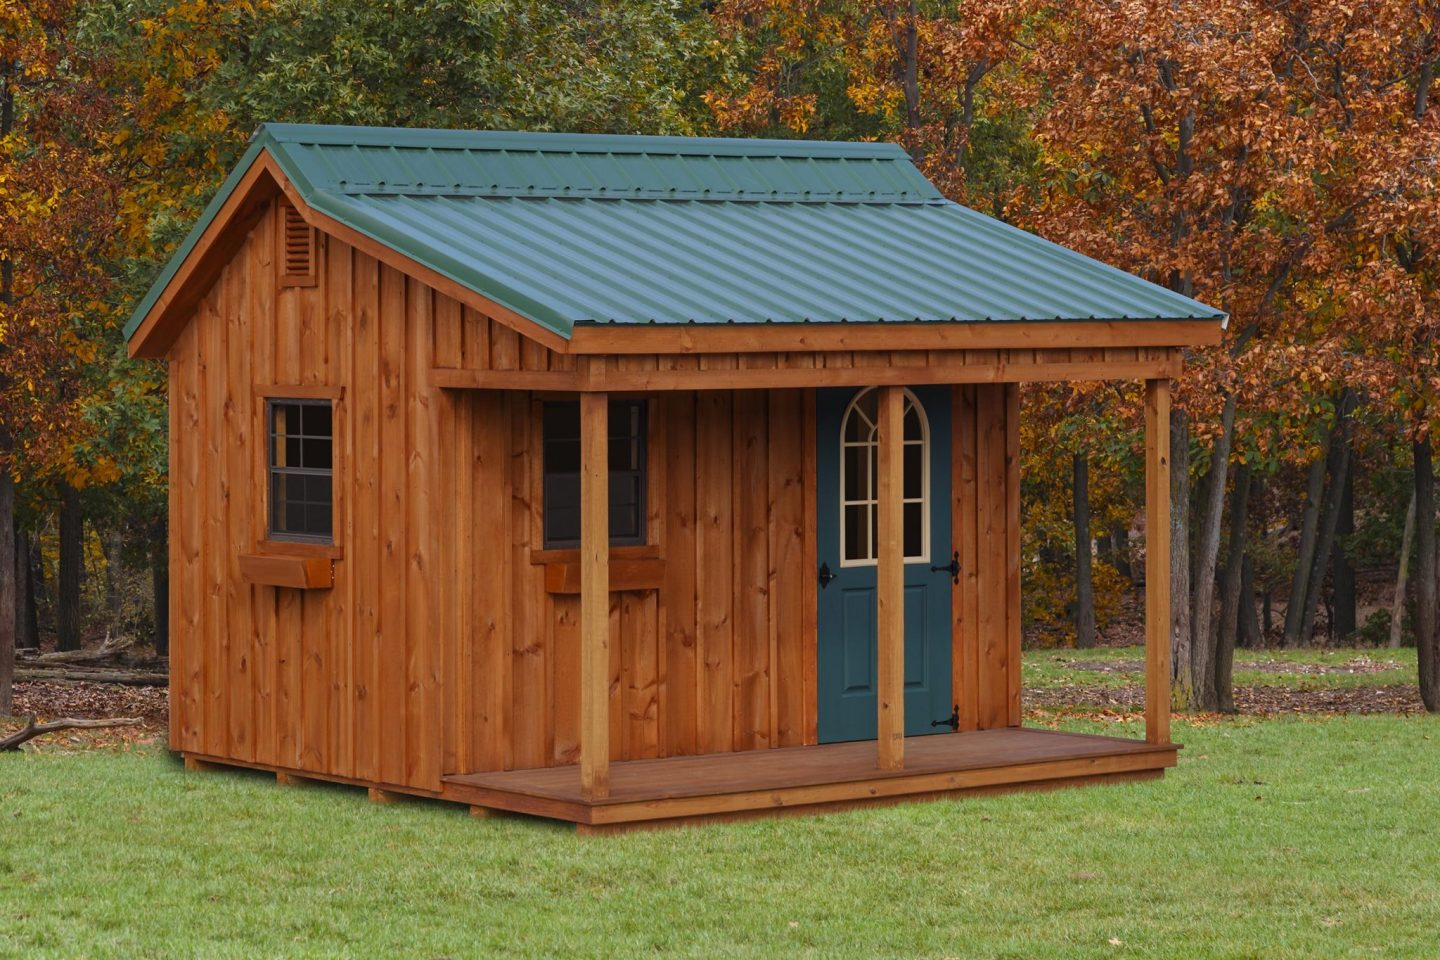 Cottage Style Shed Cabin Wooden Sheds, Outdoor Sheds Cabins